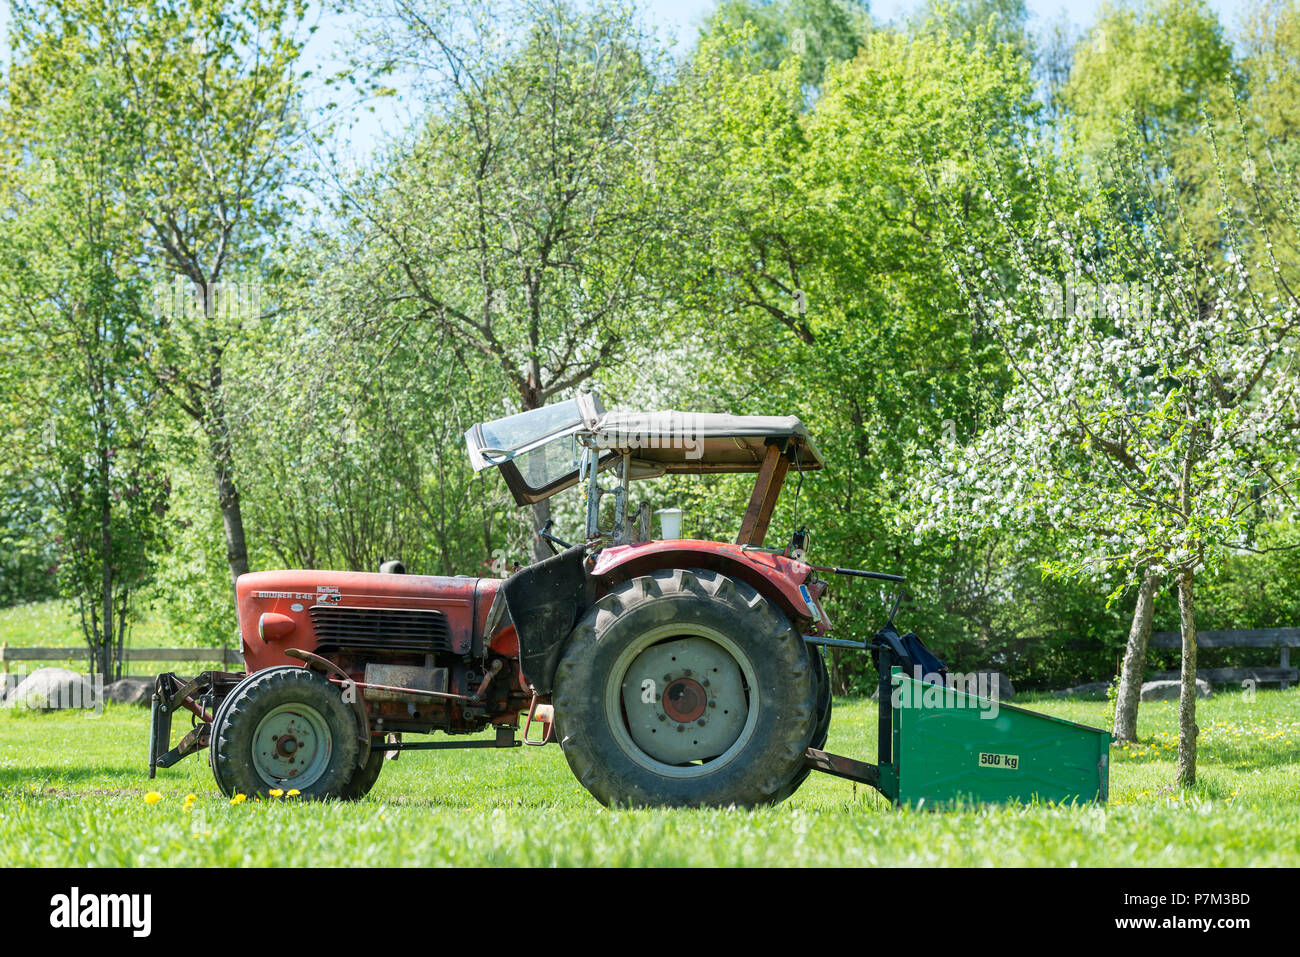 Sulzberg, Bavaria, Germany, Güldner G 45 tractor, built in 1967, engine capacity 3140 cc, 45 hp - Stock Image